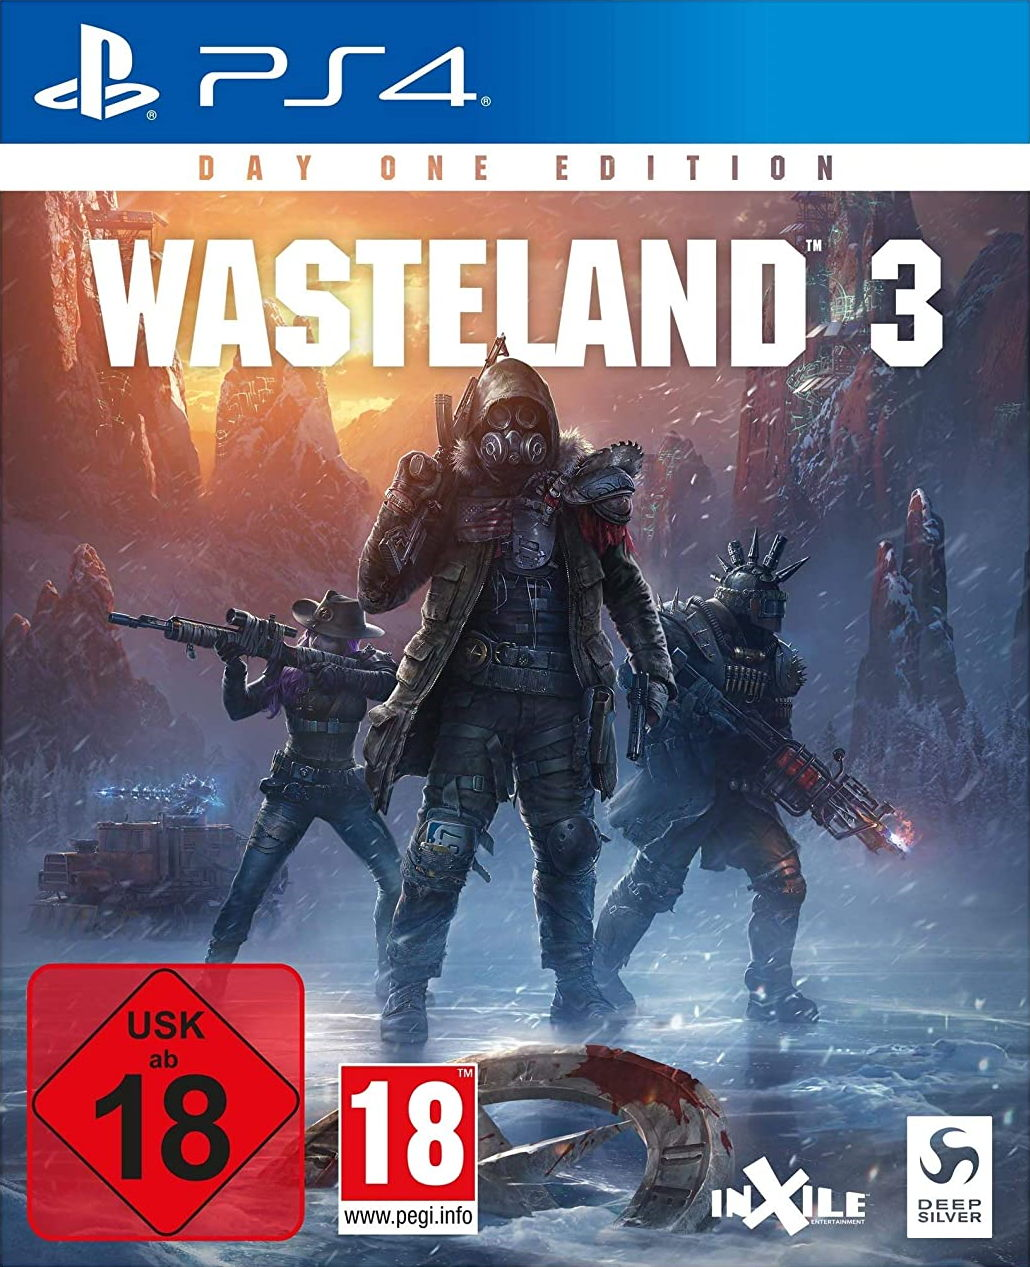 Wasteland 3 - DayOne Edition